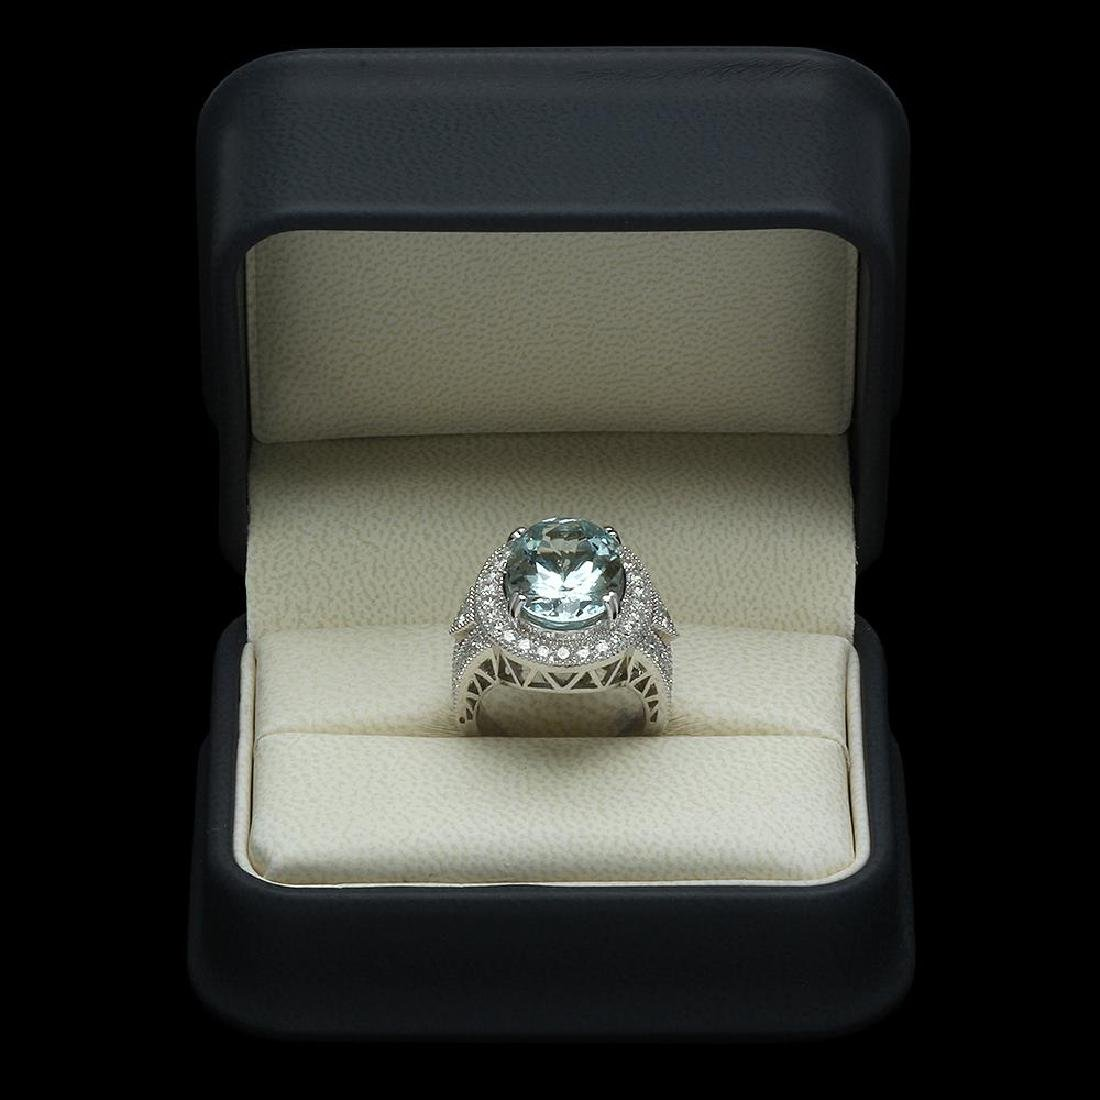 14K Gold 9.35ct Aquamarine & 1.85ct Diamond Ring - 4